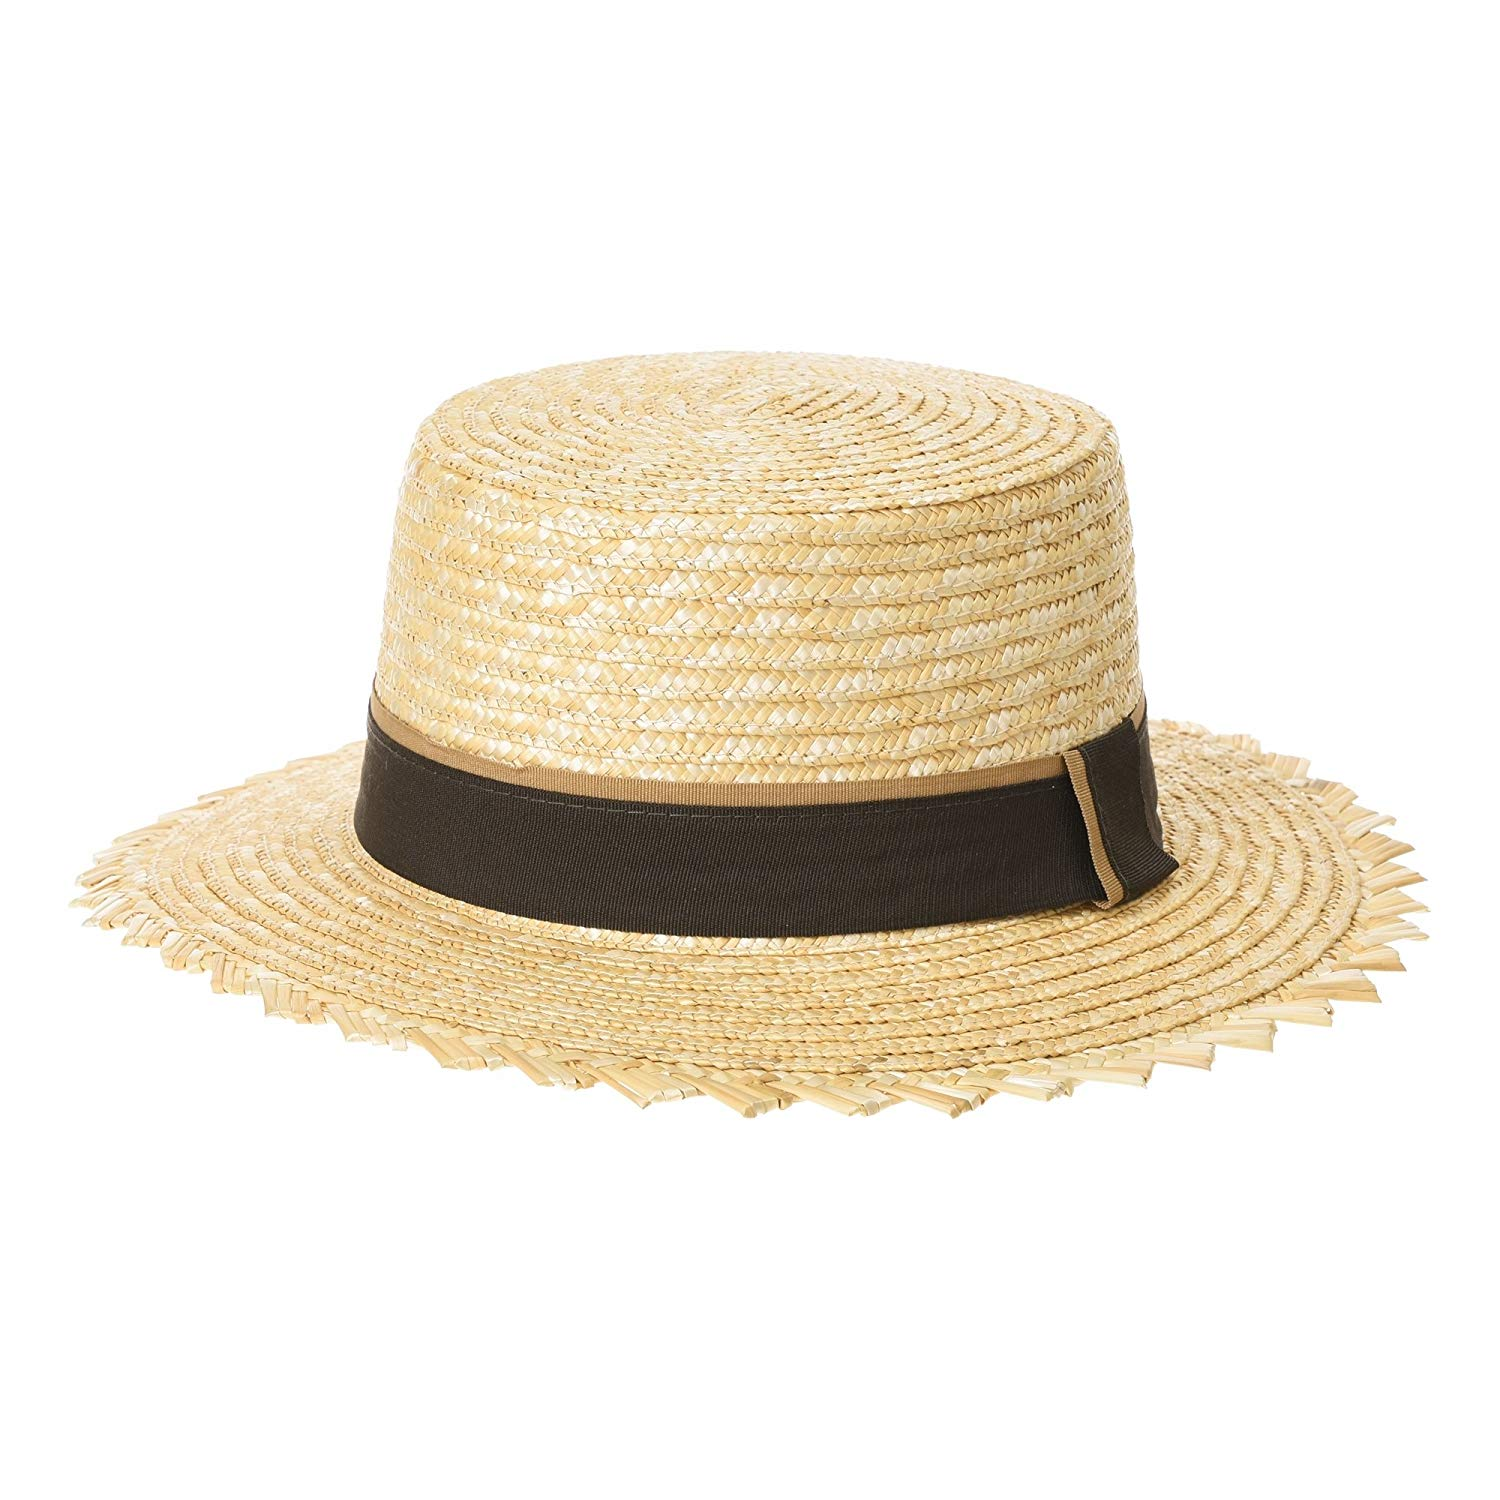 a5015f7386cdd Get Quotations · WITHMOONS Boater Hat Straw Summer Ribbon Skimmer Barber  Sun Hat ACW1018